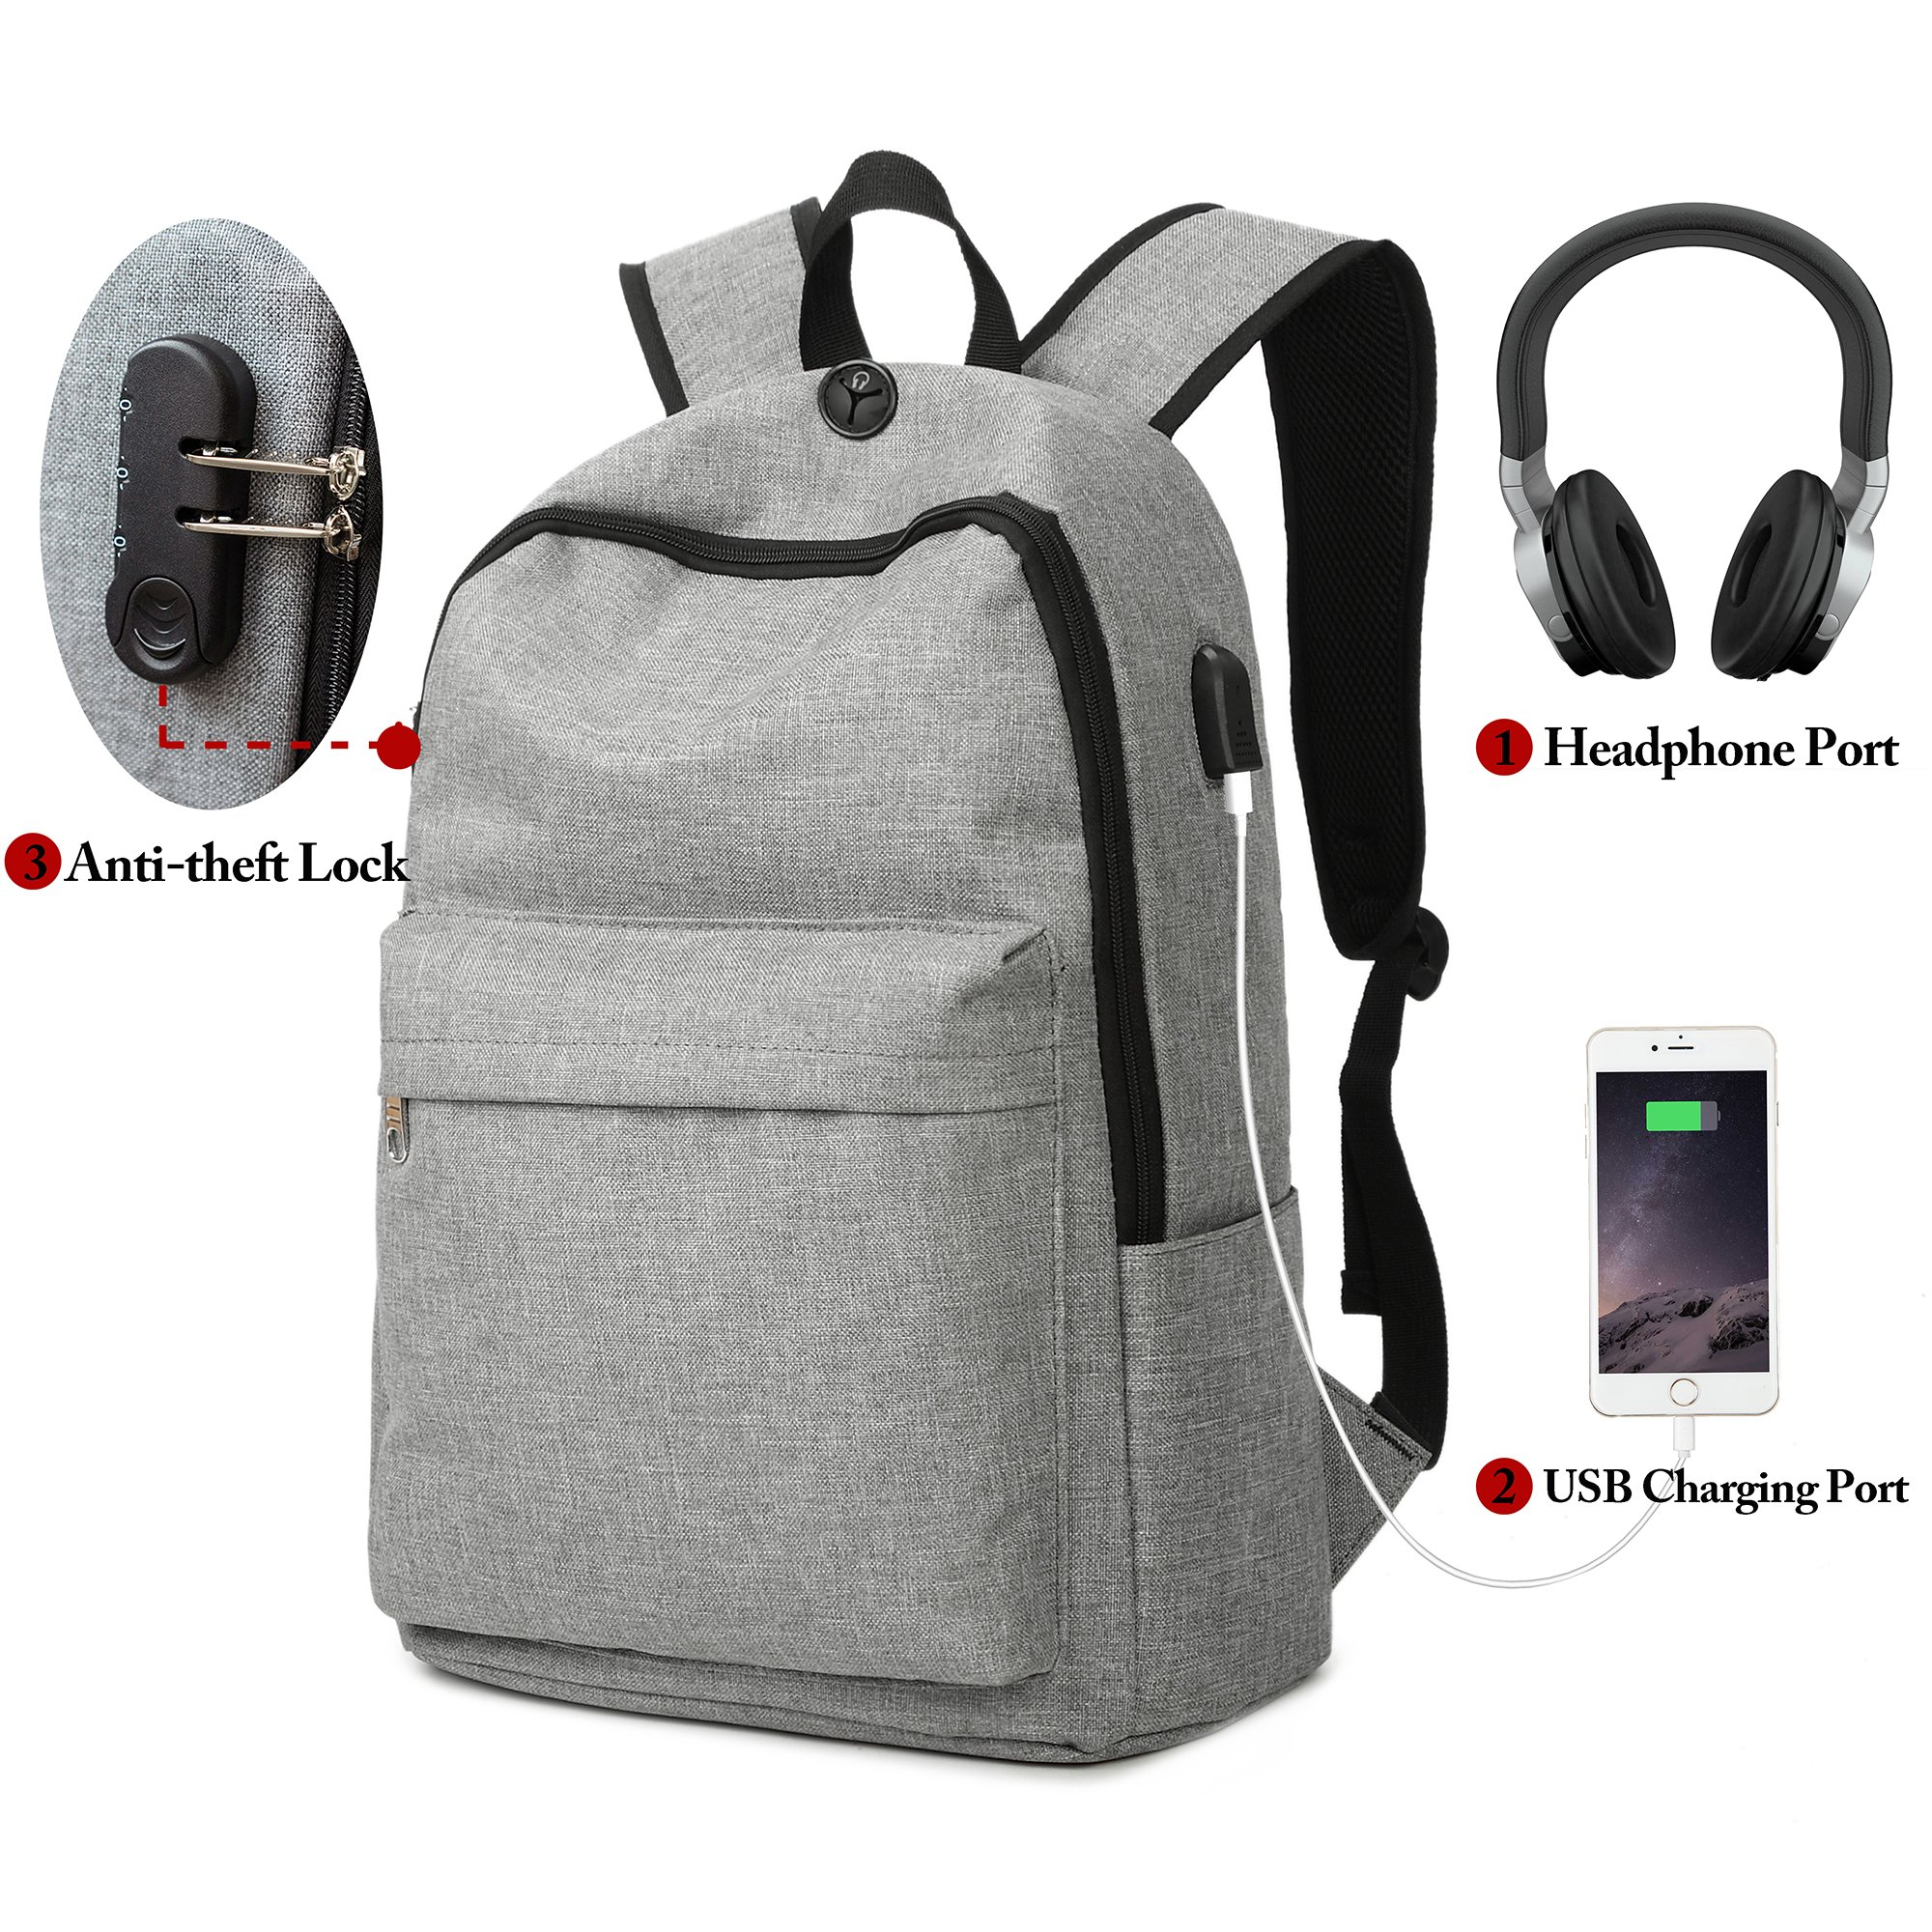 Laptop Backpack, Winblo Anti-theft Travel Laptop Backpack with USB Charging Port & Headphone Port & Lock School Bookbag for Men Women College Travel Backpack Fits Under 17 Inch Laptop